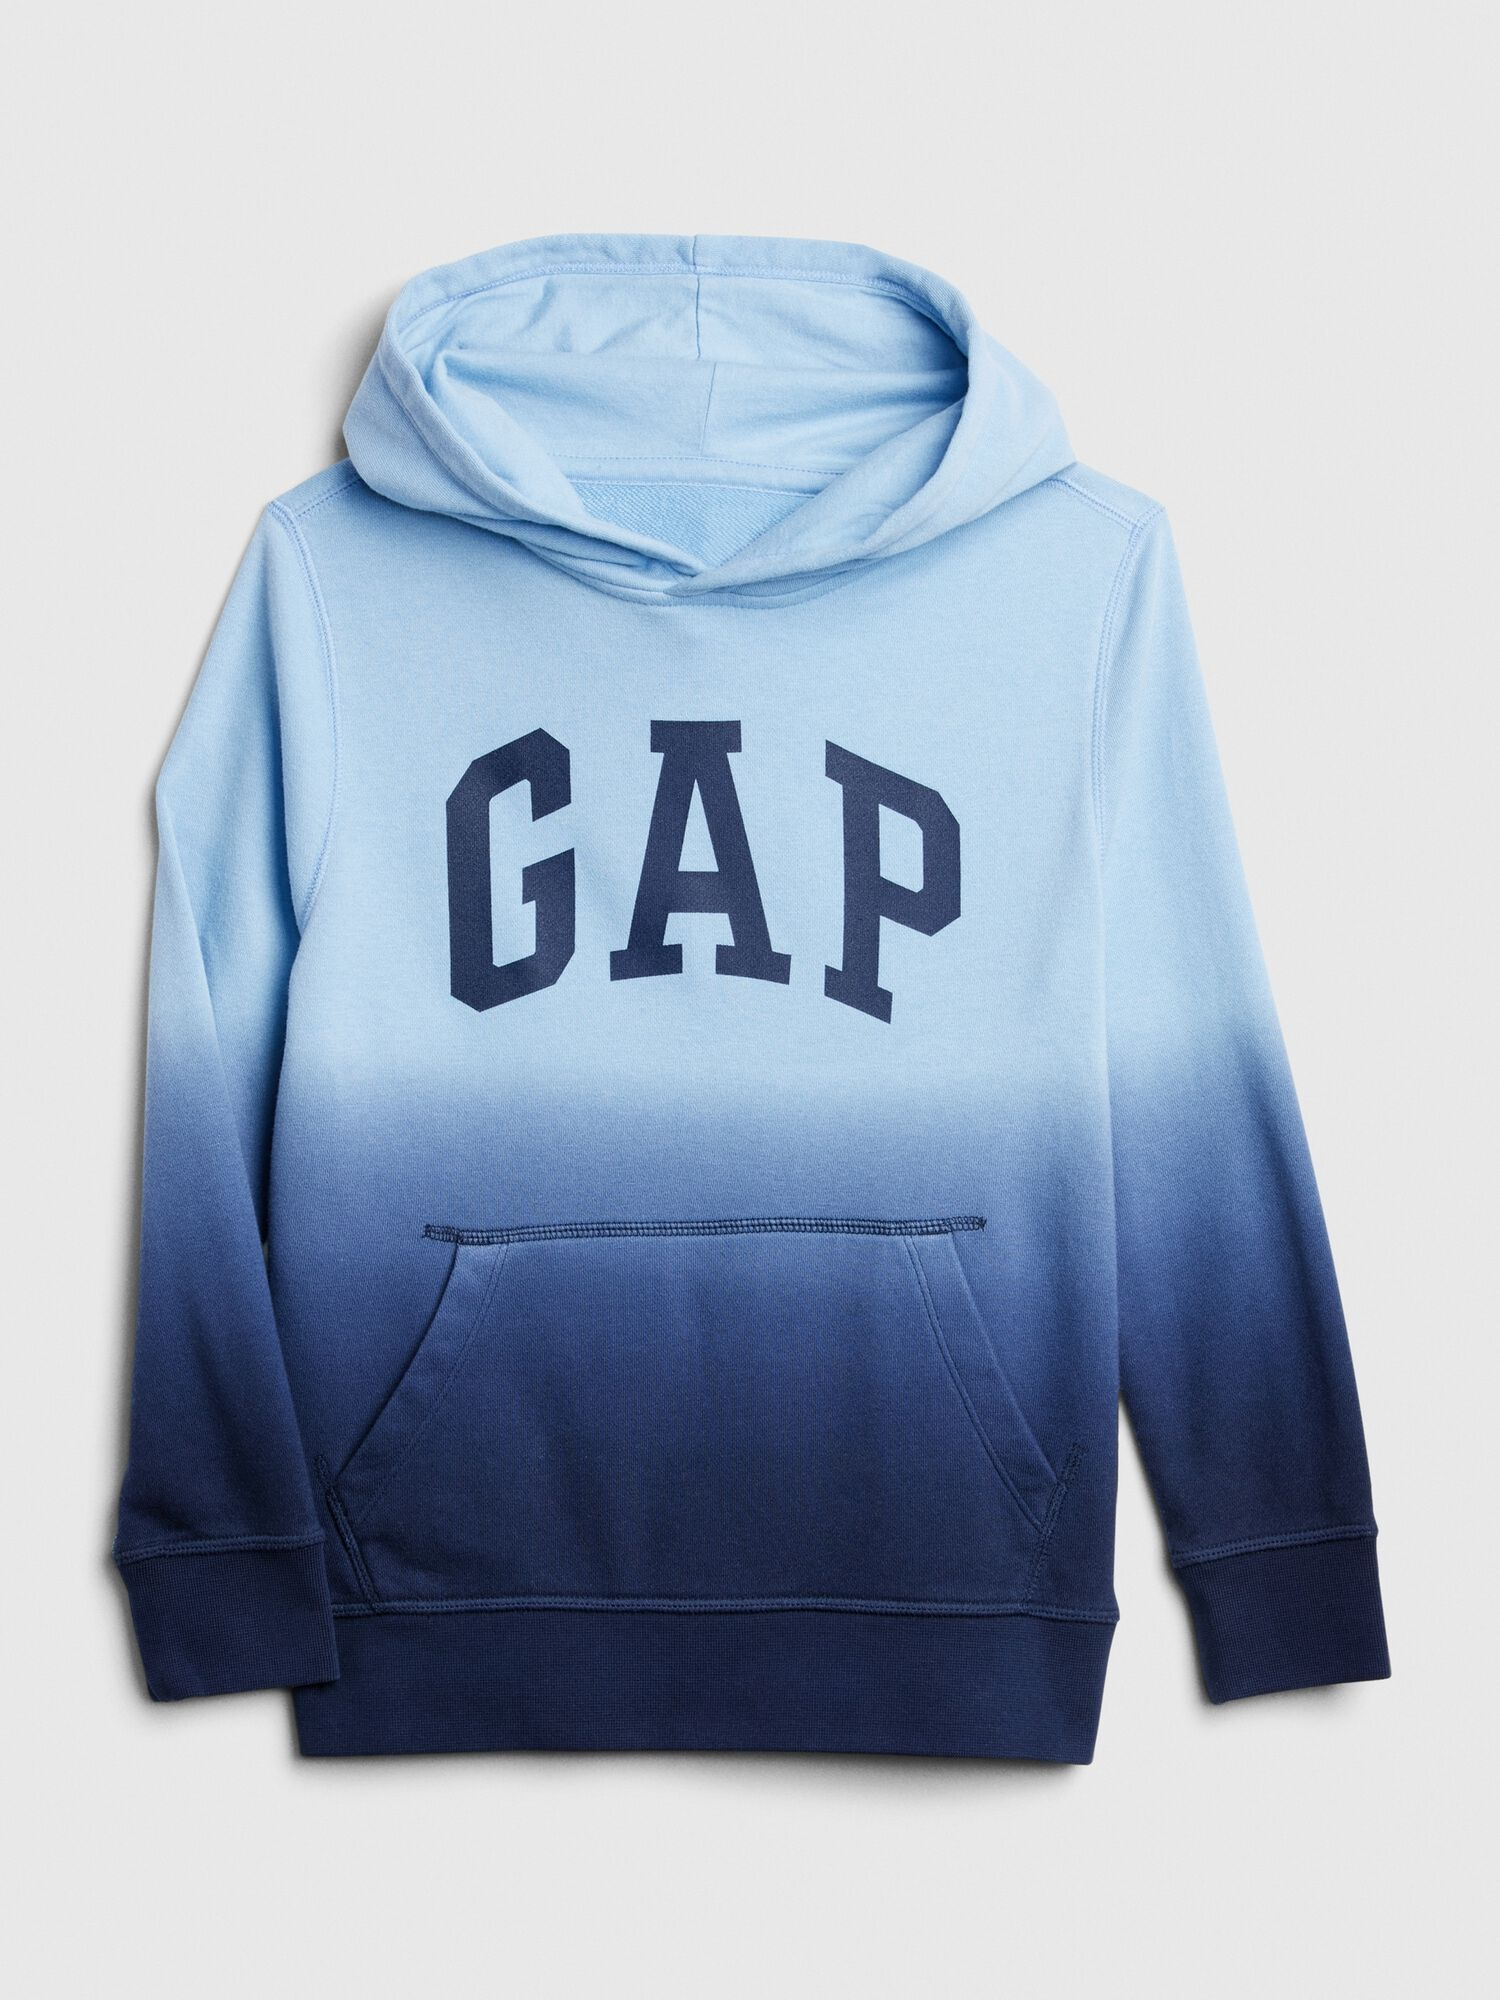 XL XXL NEW M L GAP LOGO PULLOVER Hoodie Long Sleeve Sweatshirts for MEN S